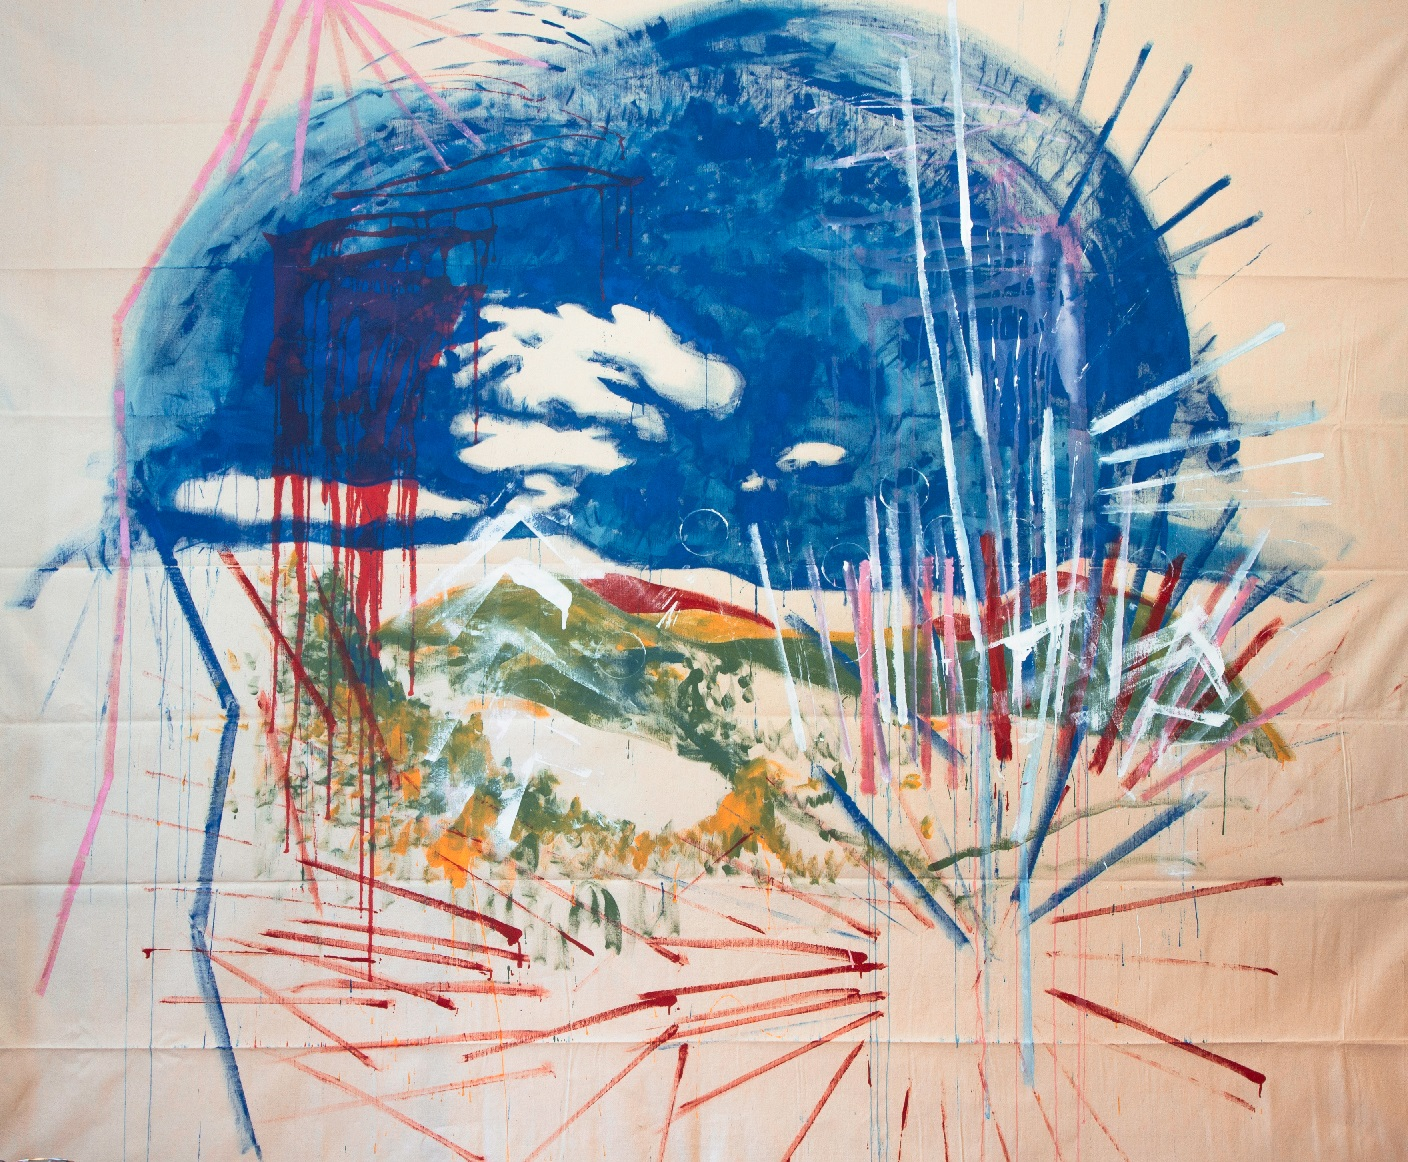 Michael Rotondi, Mountain And Sky, smalto su cotone, 240x280 cm., 2016